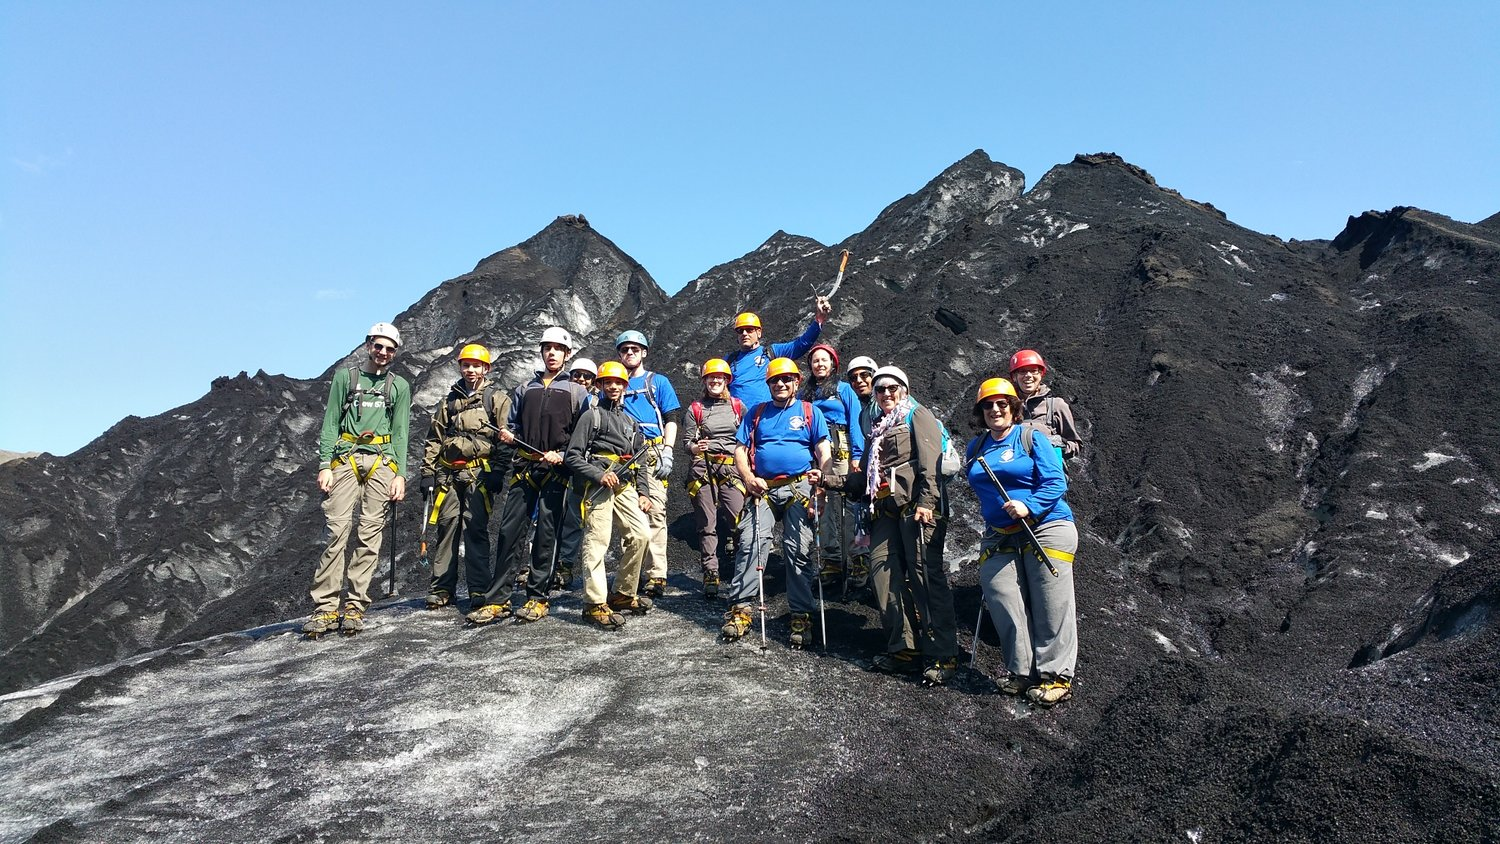 The crew visited Iceland last month. On July 6, they hiked up the Sòlheimajökull Glacier.